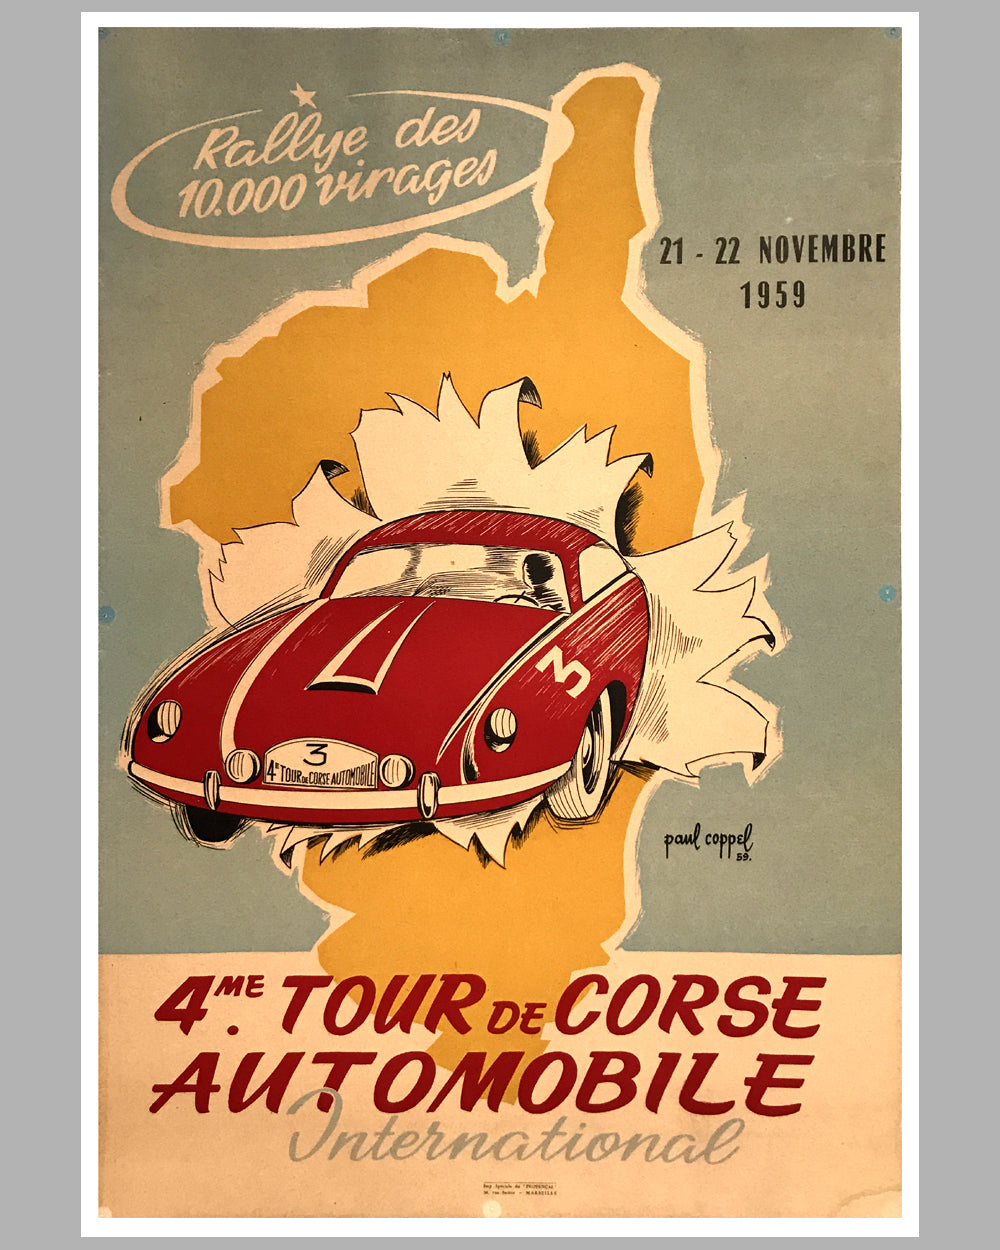 1959 - 4eme (4th) Tour de Corse Automobile International Rallye of the 10,000 turns